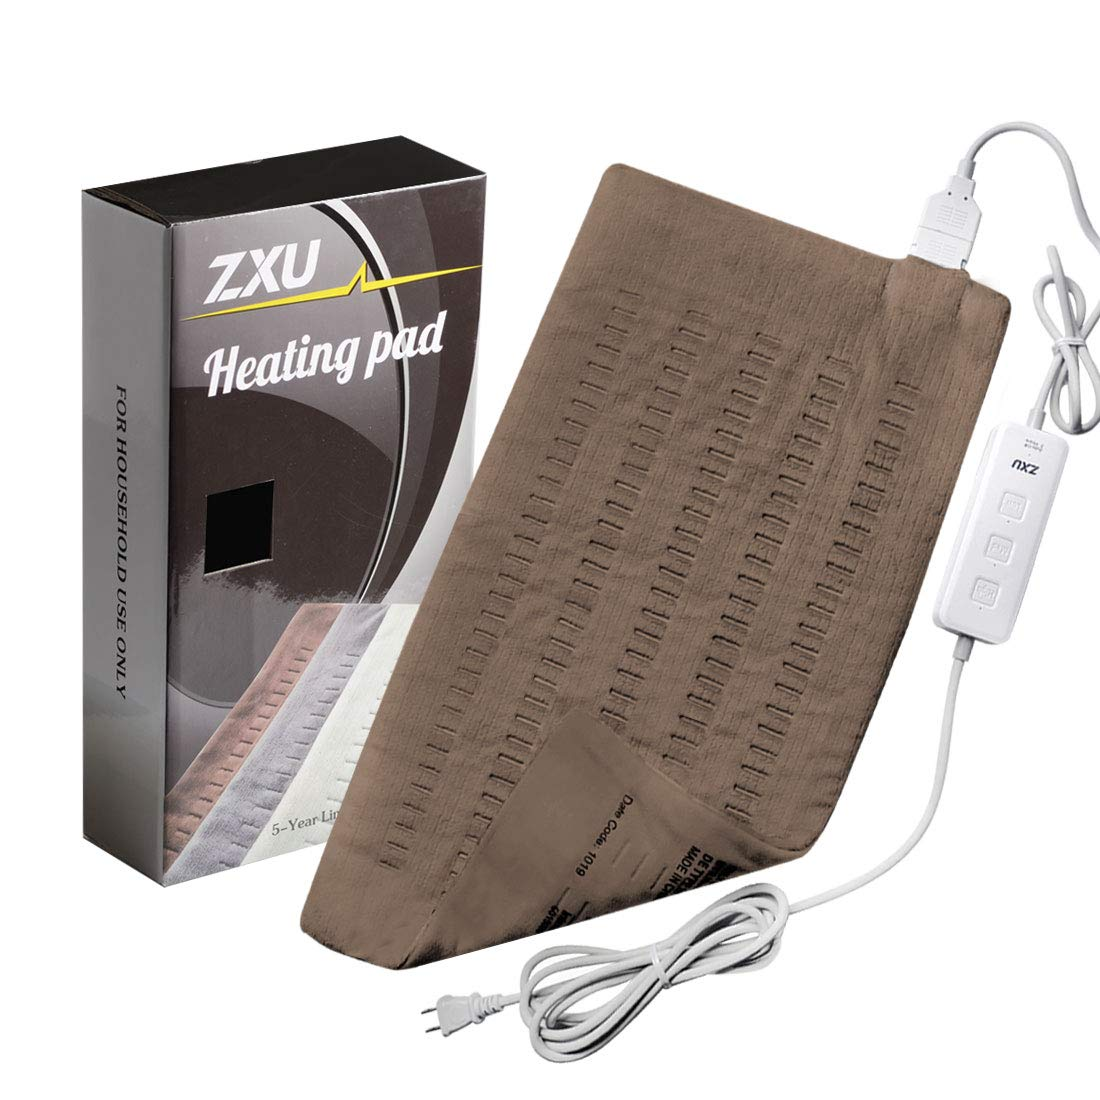 """ZXU XL Electric Heating Pad for Back Pain and Cramps Relief - Fast Heating Hot Pad with Auto Shut Off [12""""x24""""]"""